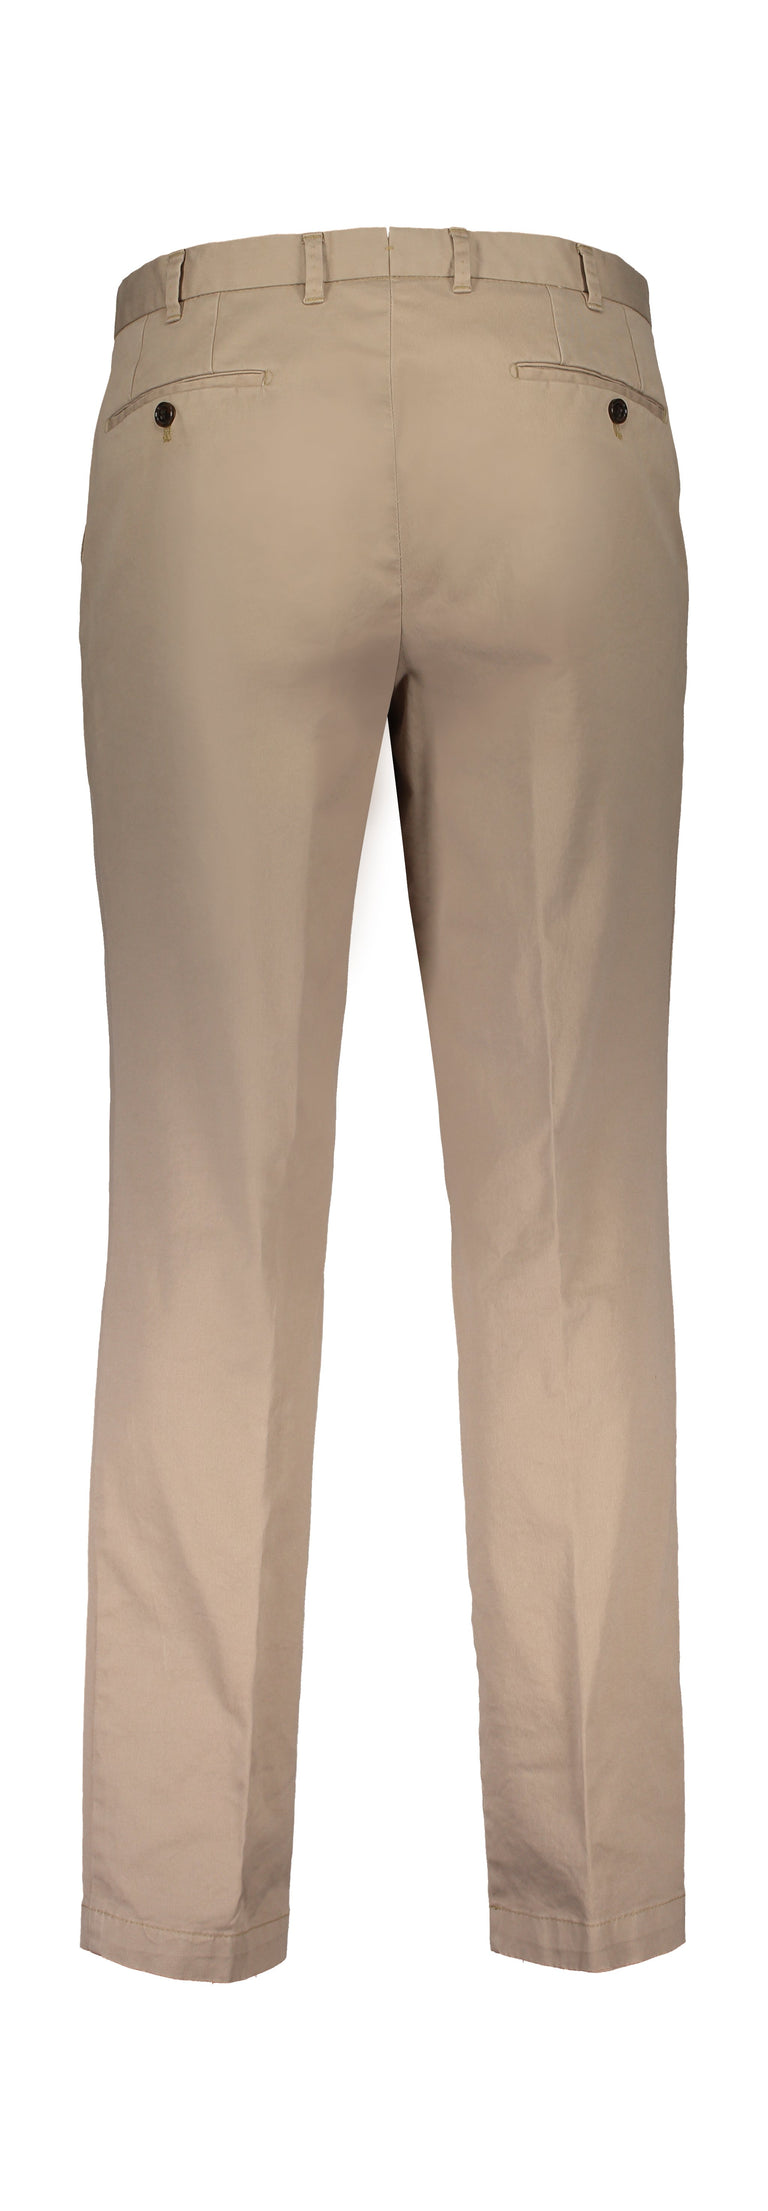 Columbus chinos in beige (1992464039998)